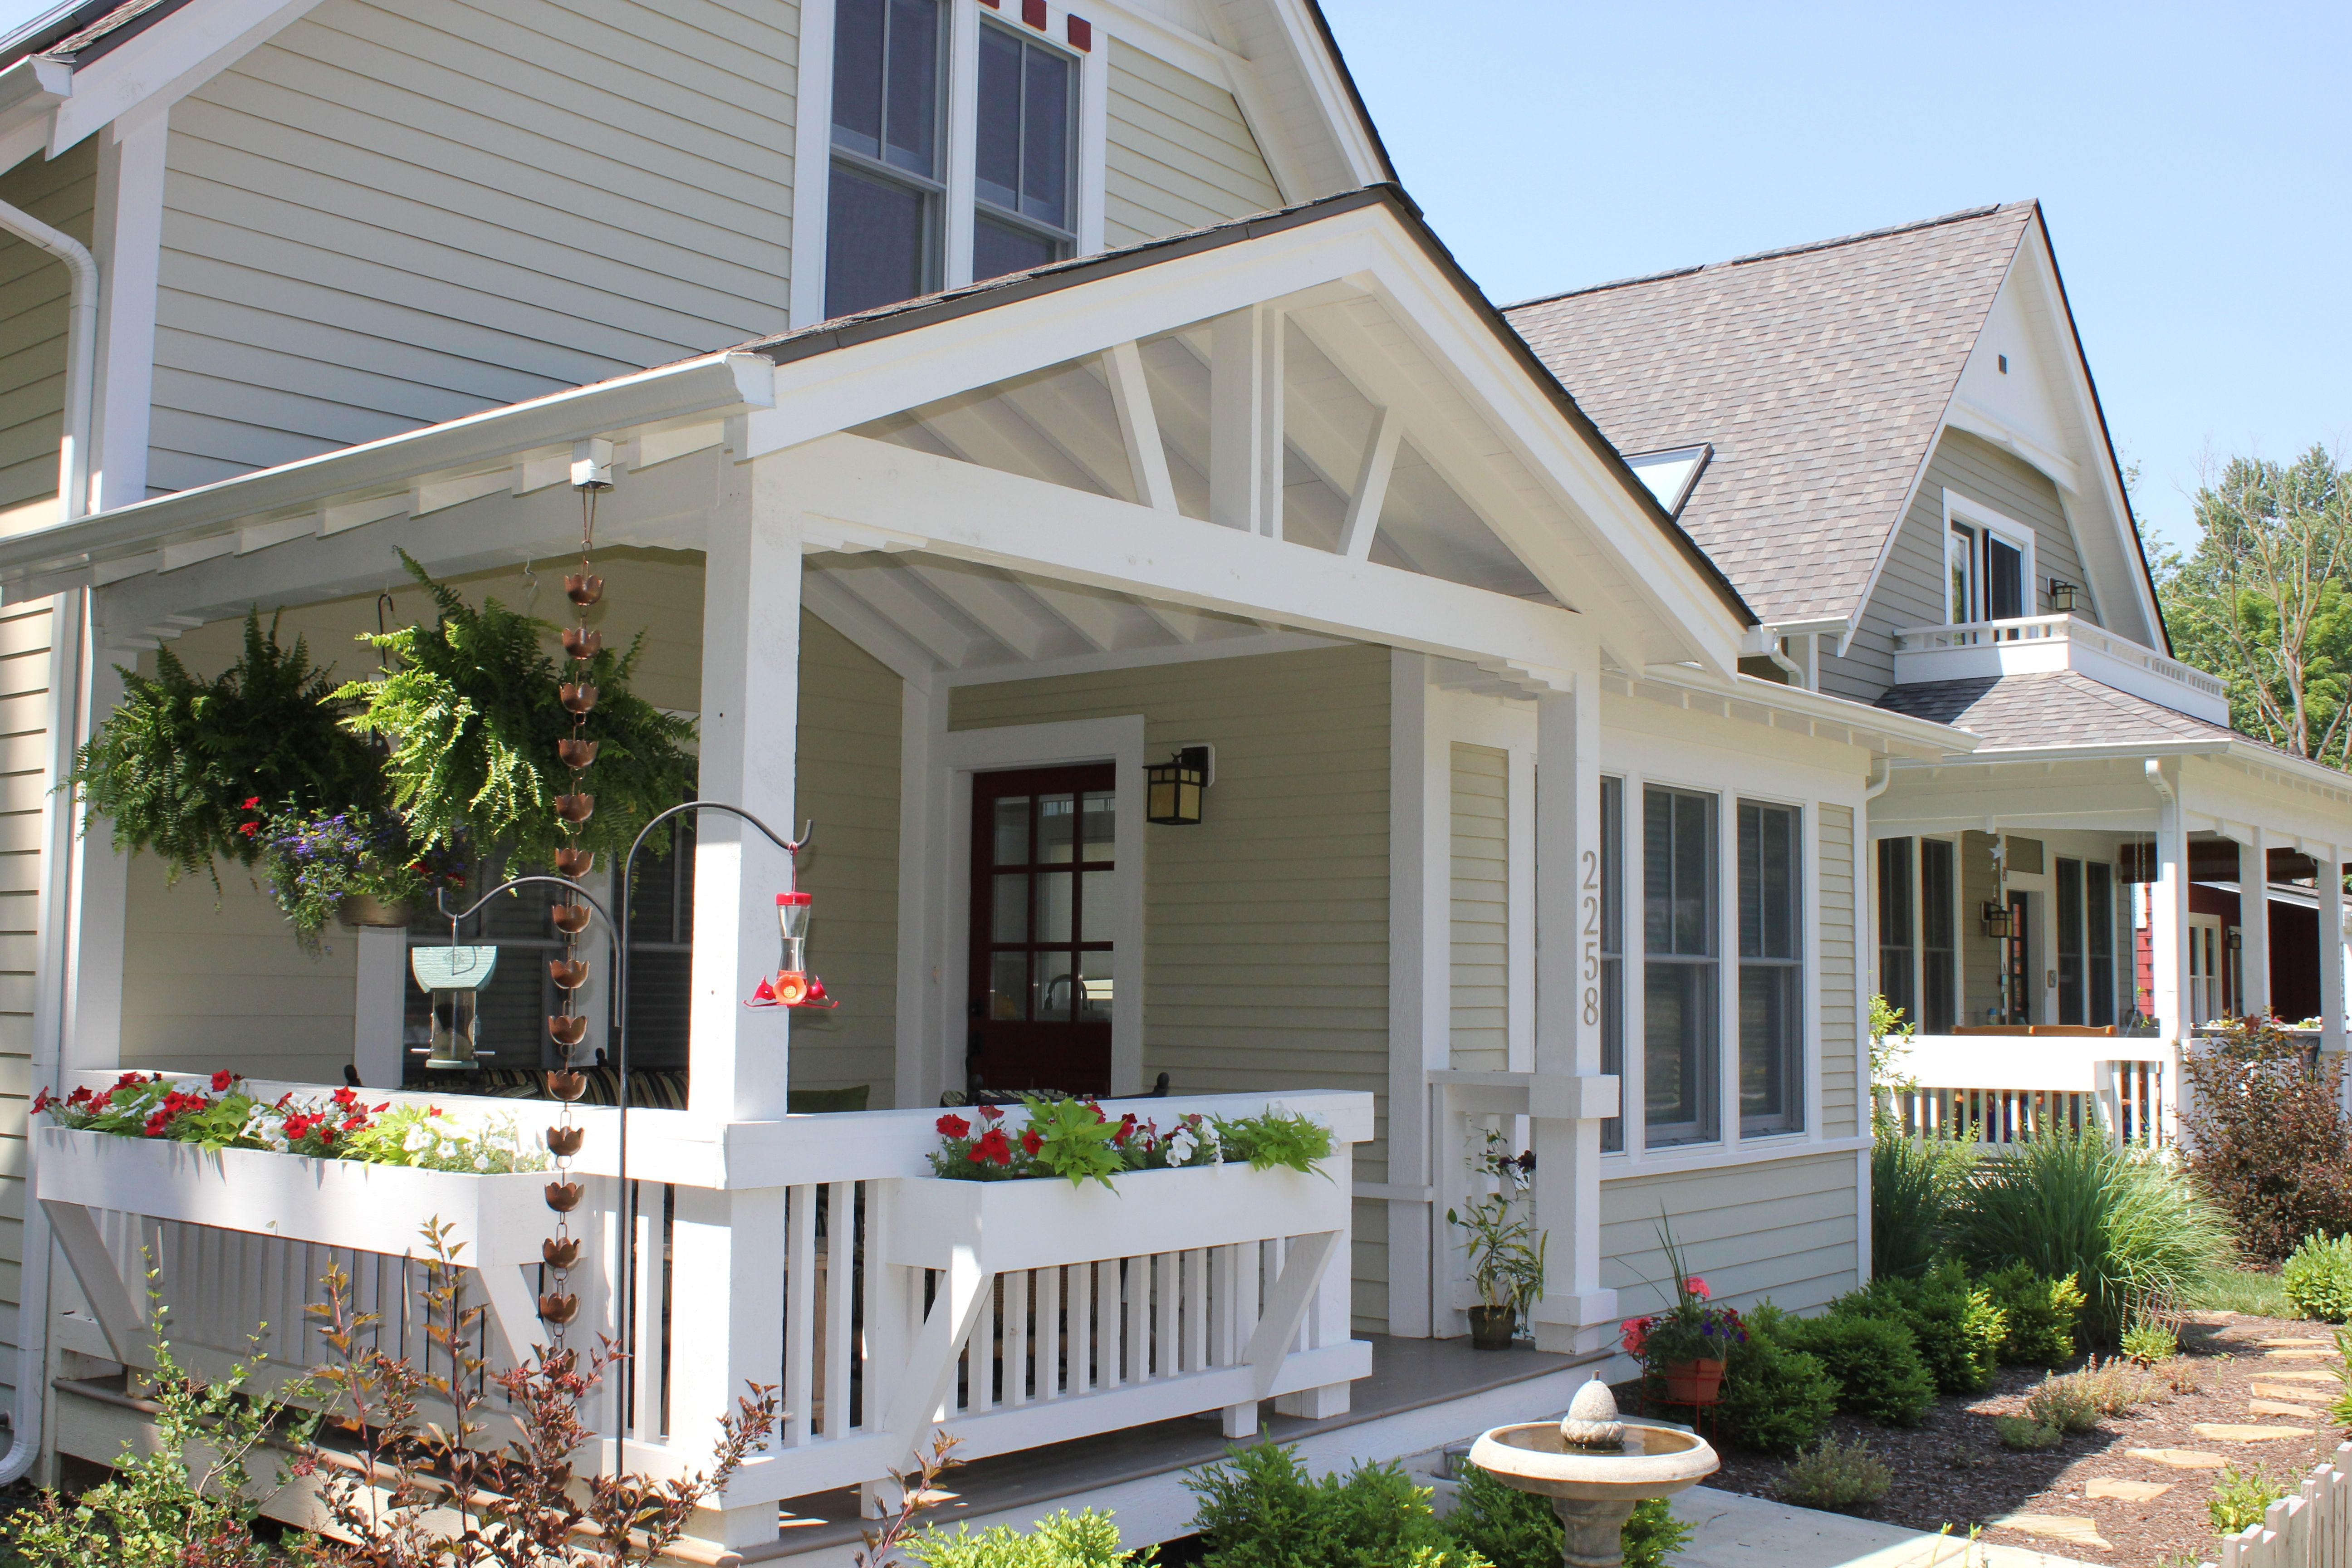 Bungalow style homes porch family dinners there s for Cottage style house plans with front porch